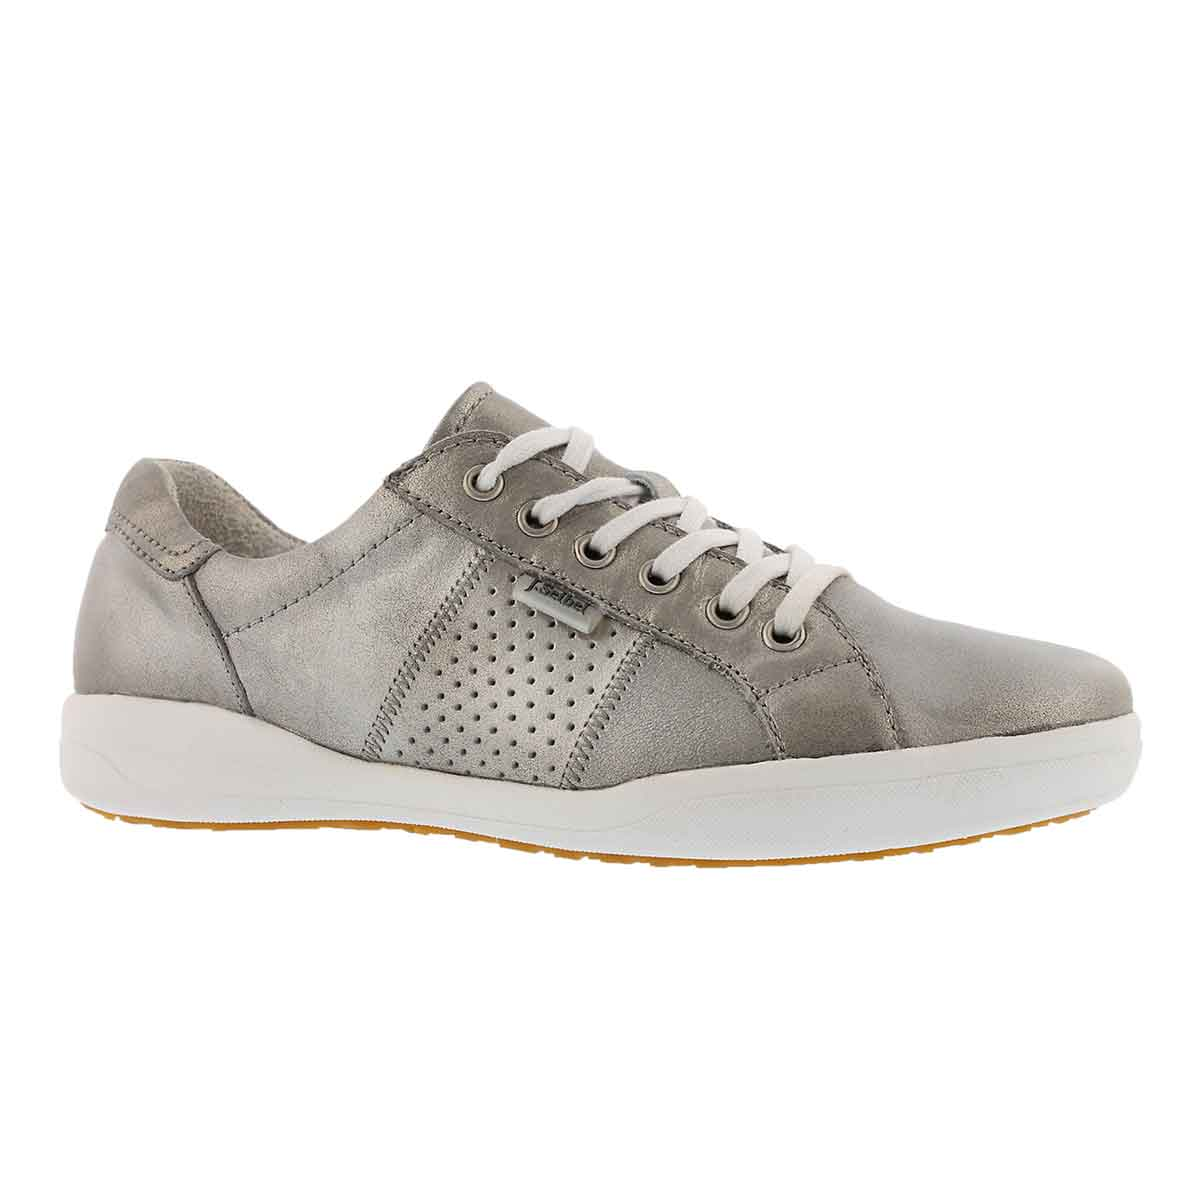 Women's SINA 41 platin lace up casual sneakers